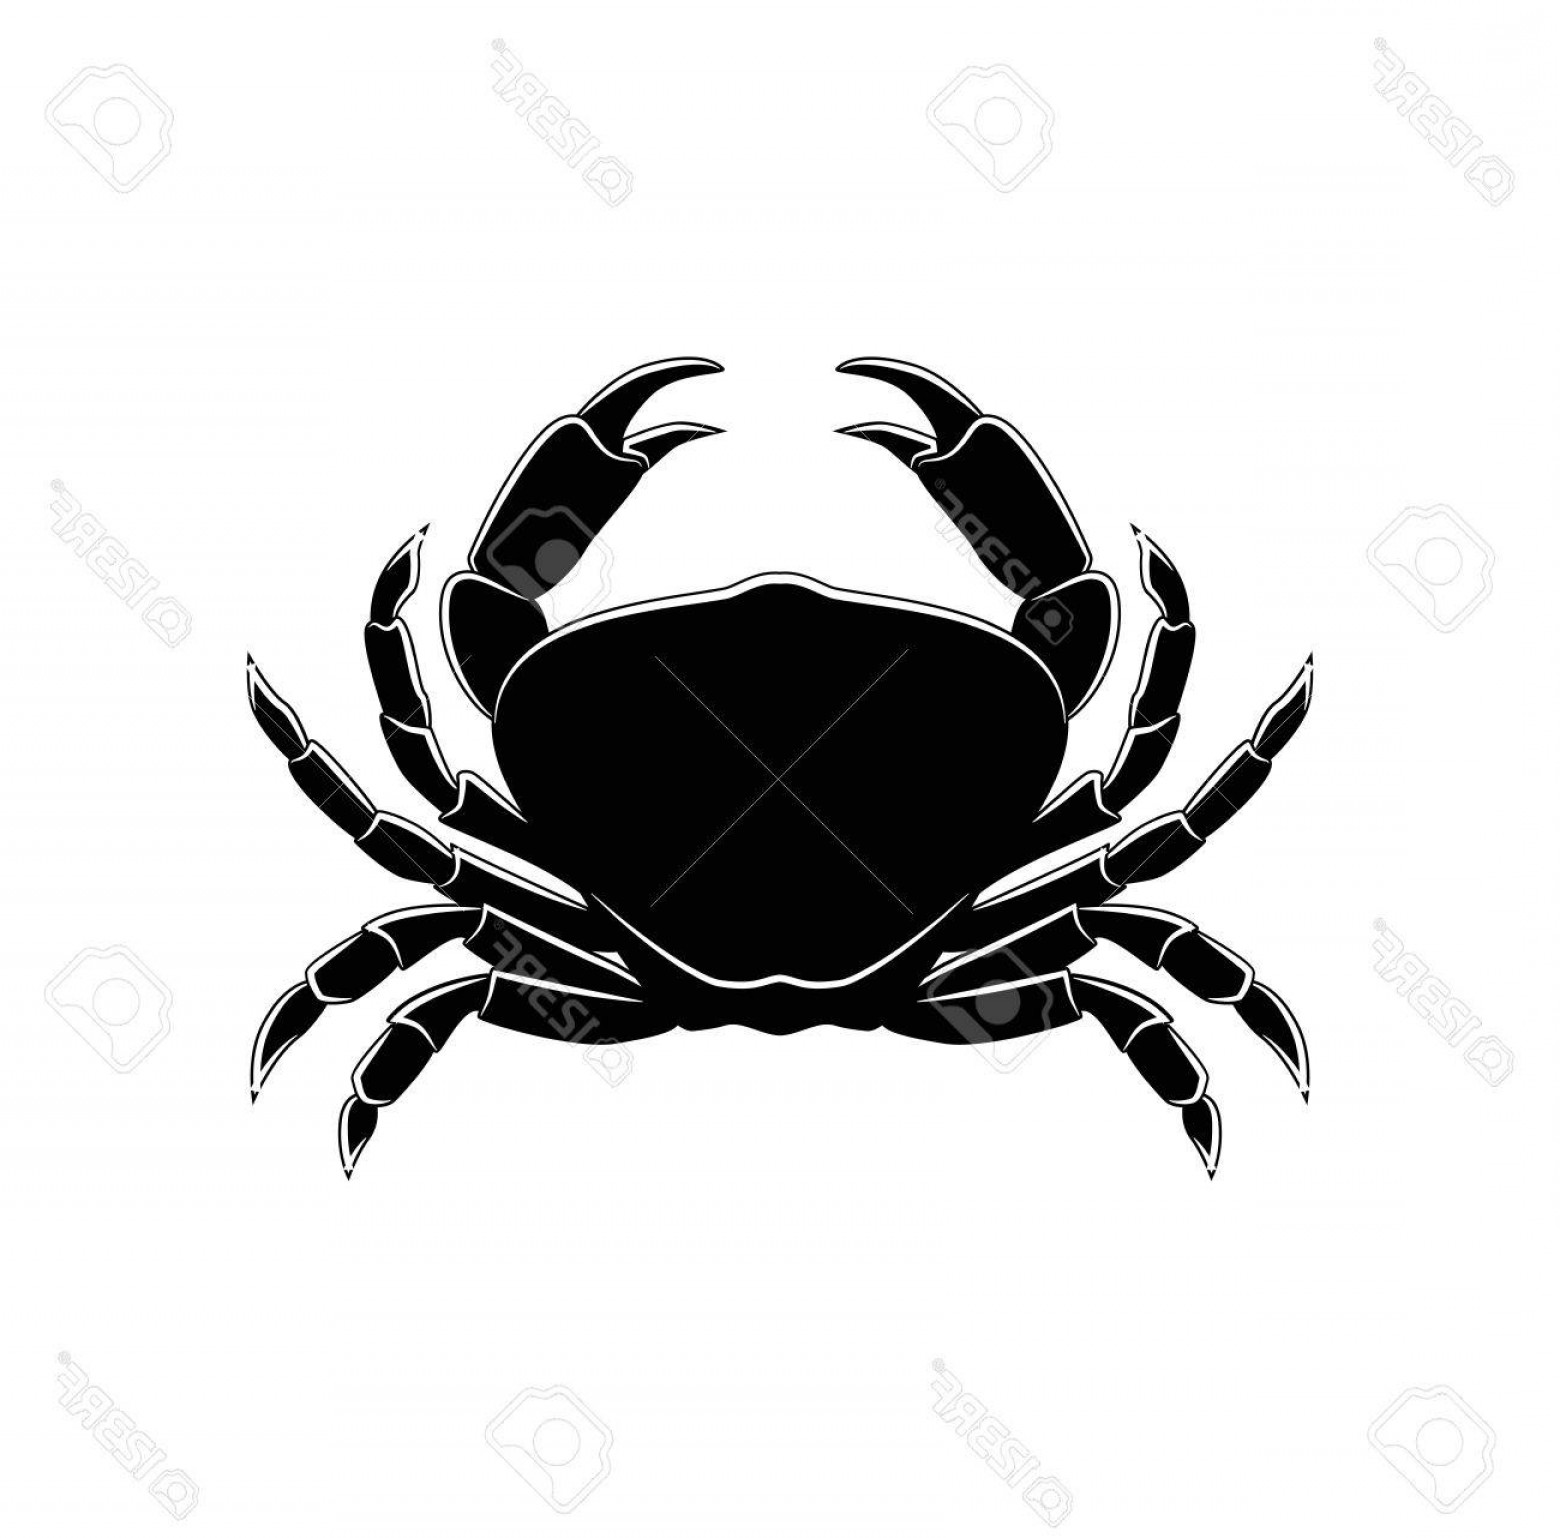 Crab Vector Black: Photostock Vector The Silhouette Of A Crab Vector Illustration Isolated On White Background